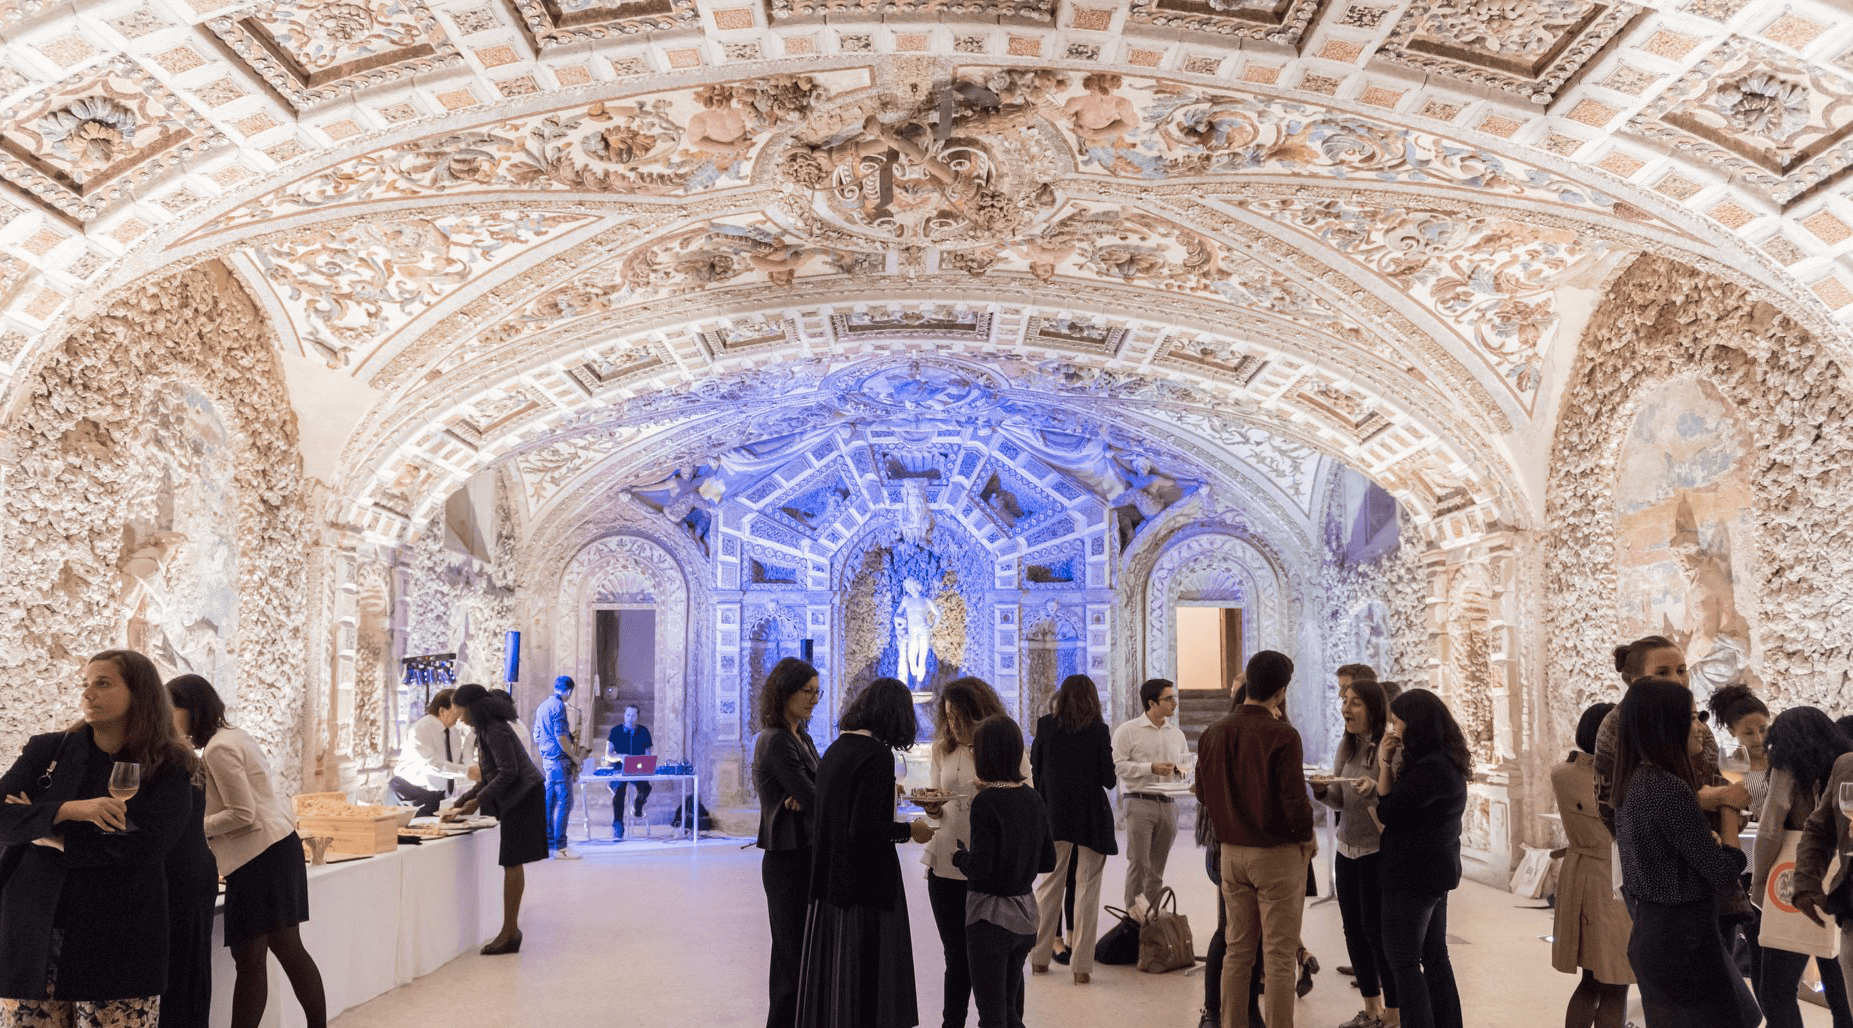 Bologna Business School class studying in one artistic venue